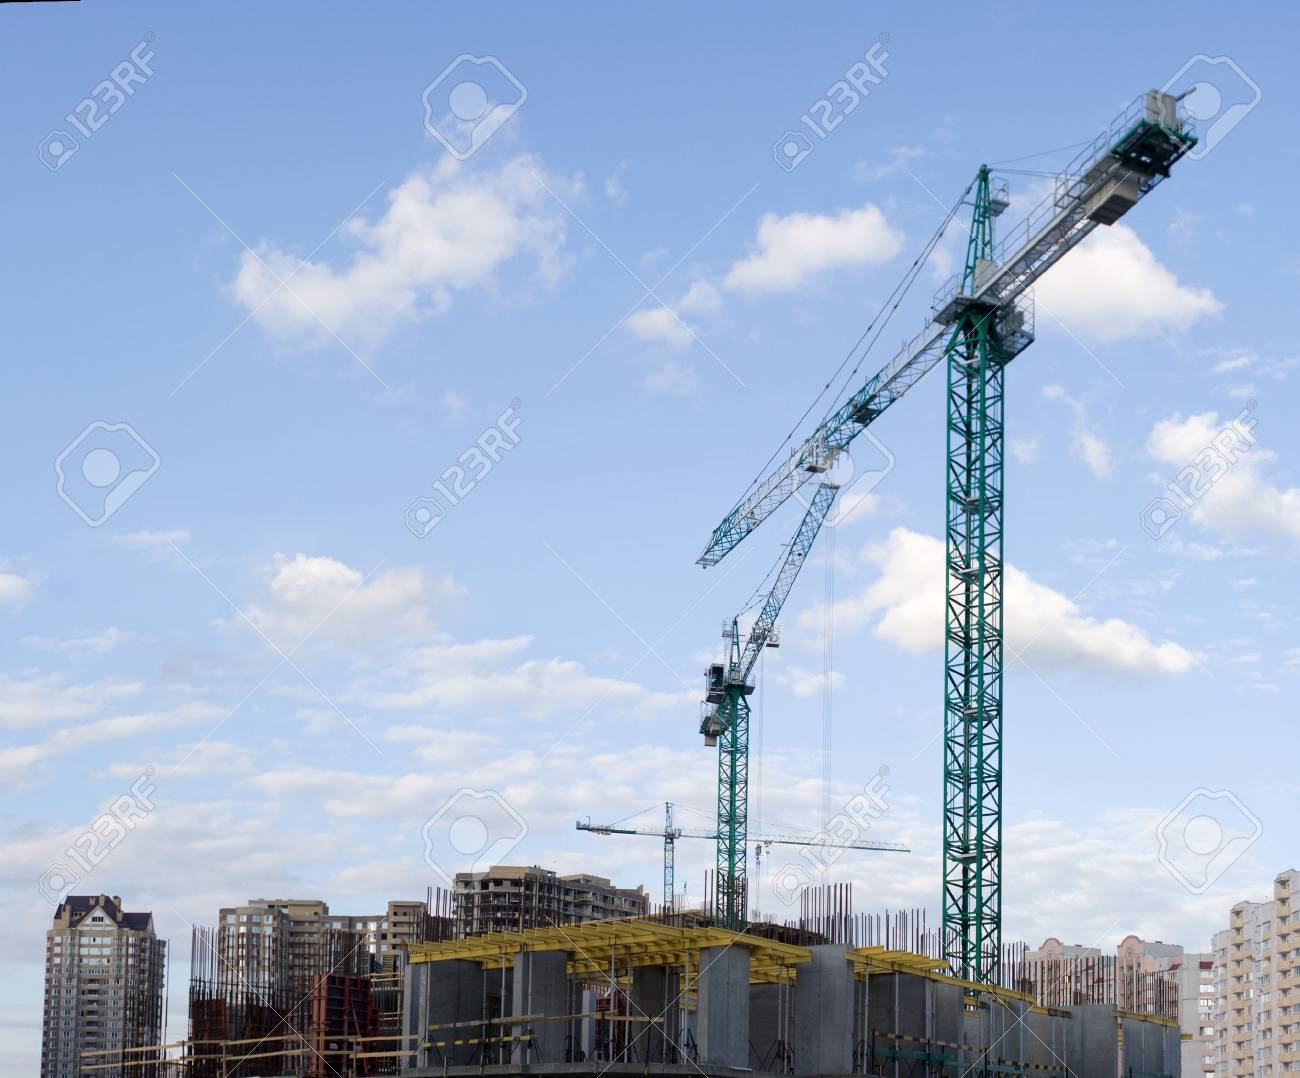 Building of new apartment houses in Kyiv - the capital city of Ukraine Stock Photo - 3873766